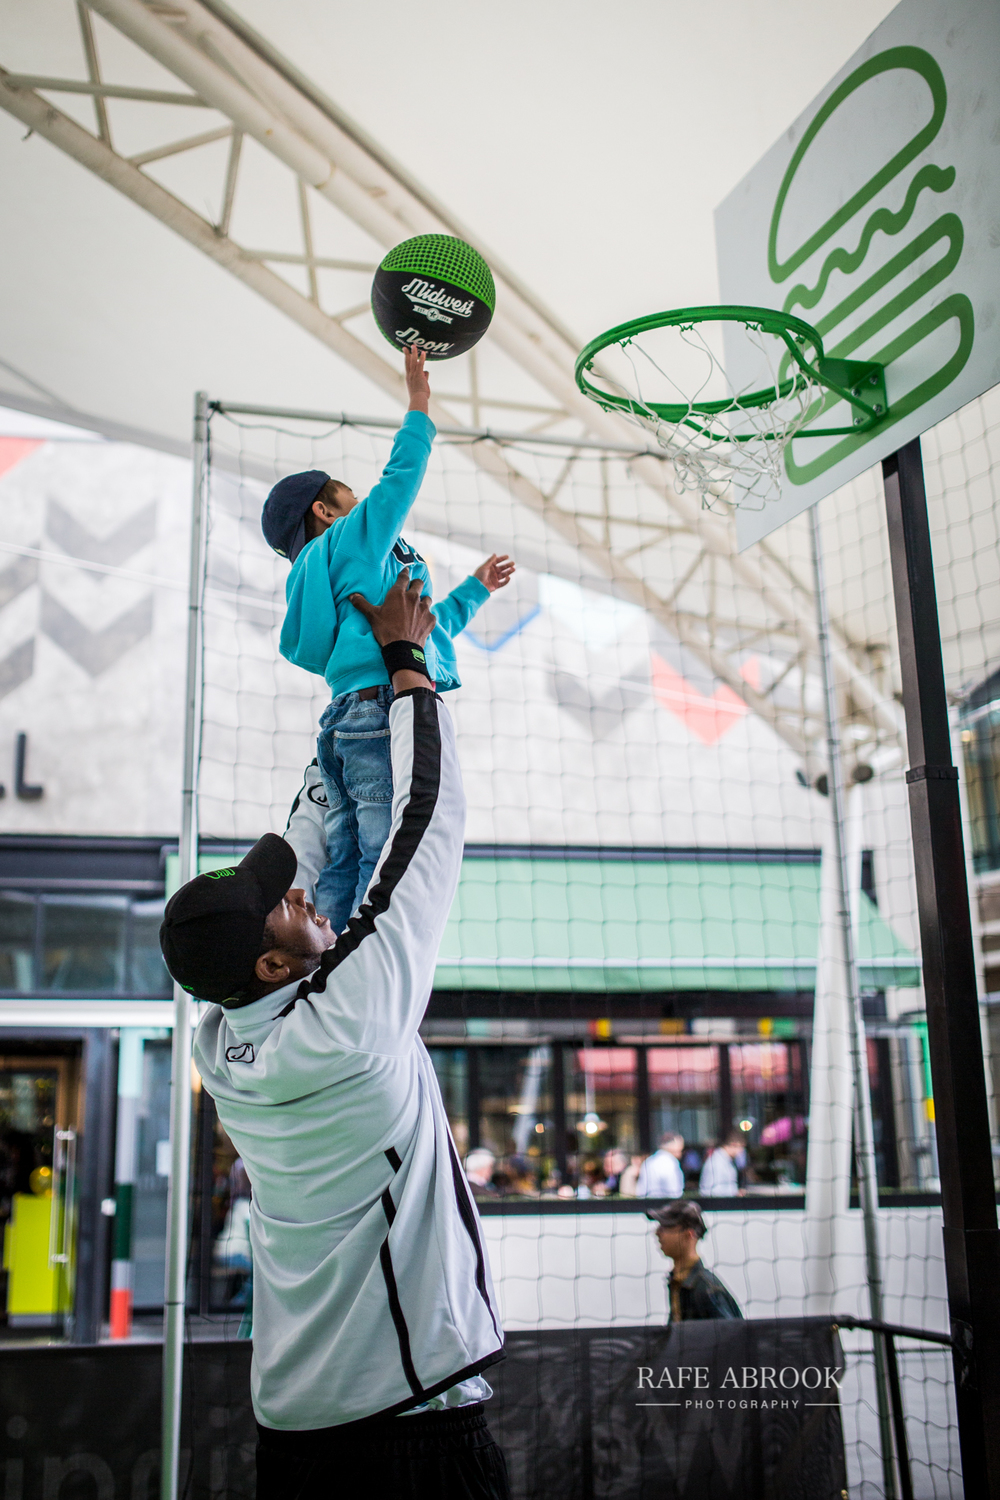 shake shack uk westfield stratford london experiential basketball-1197.jpg